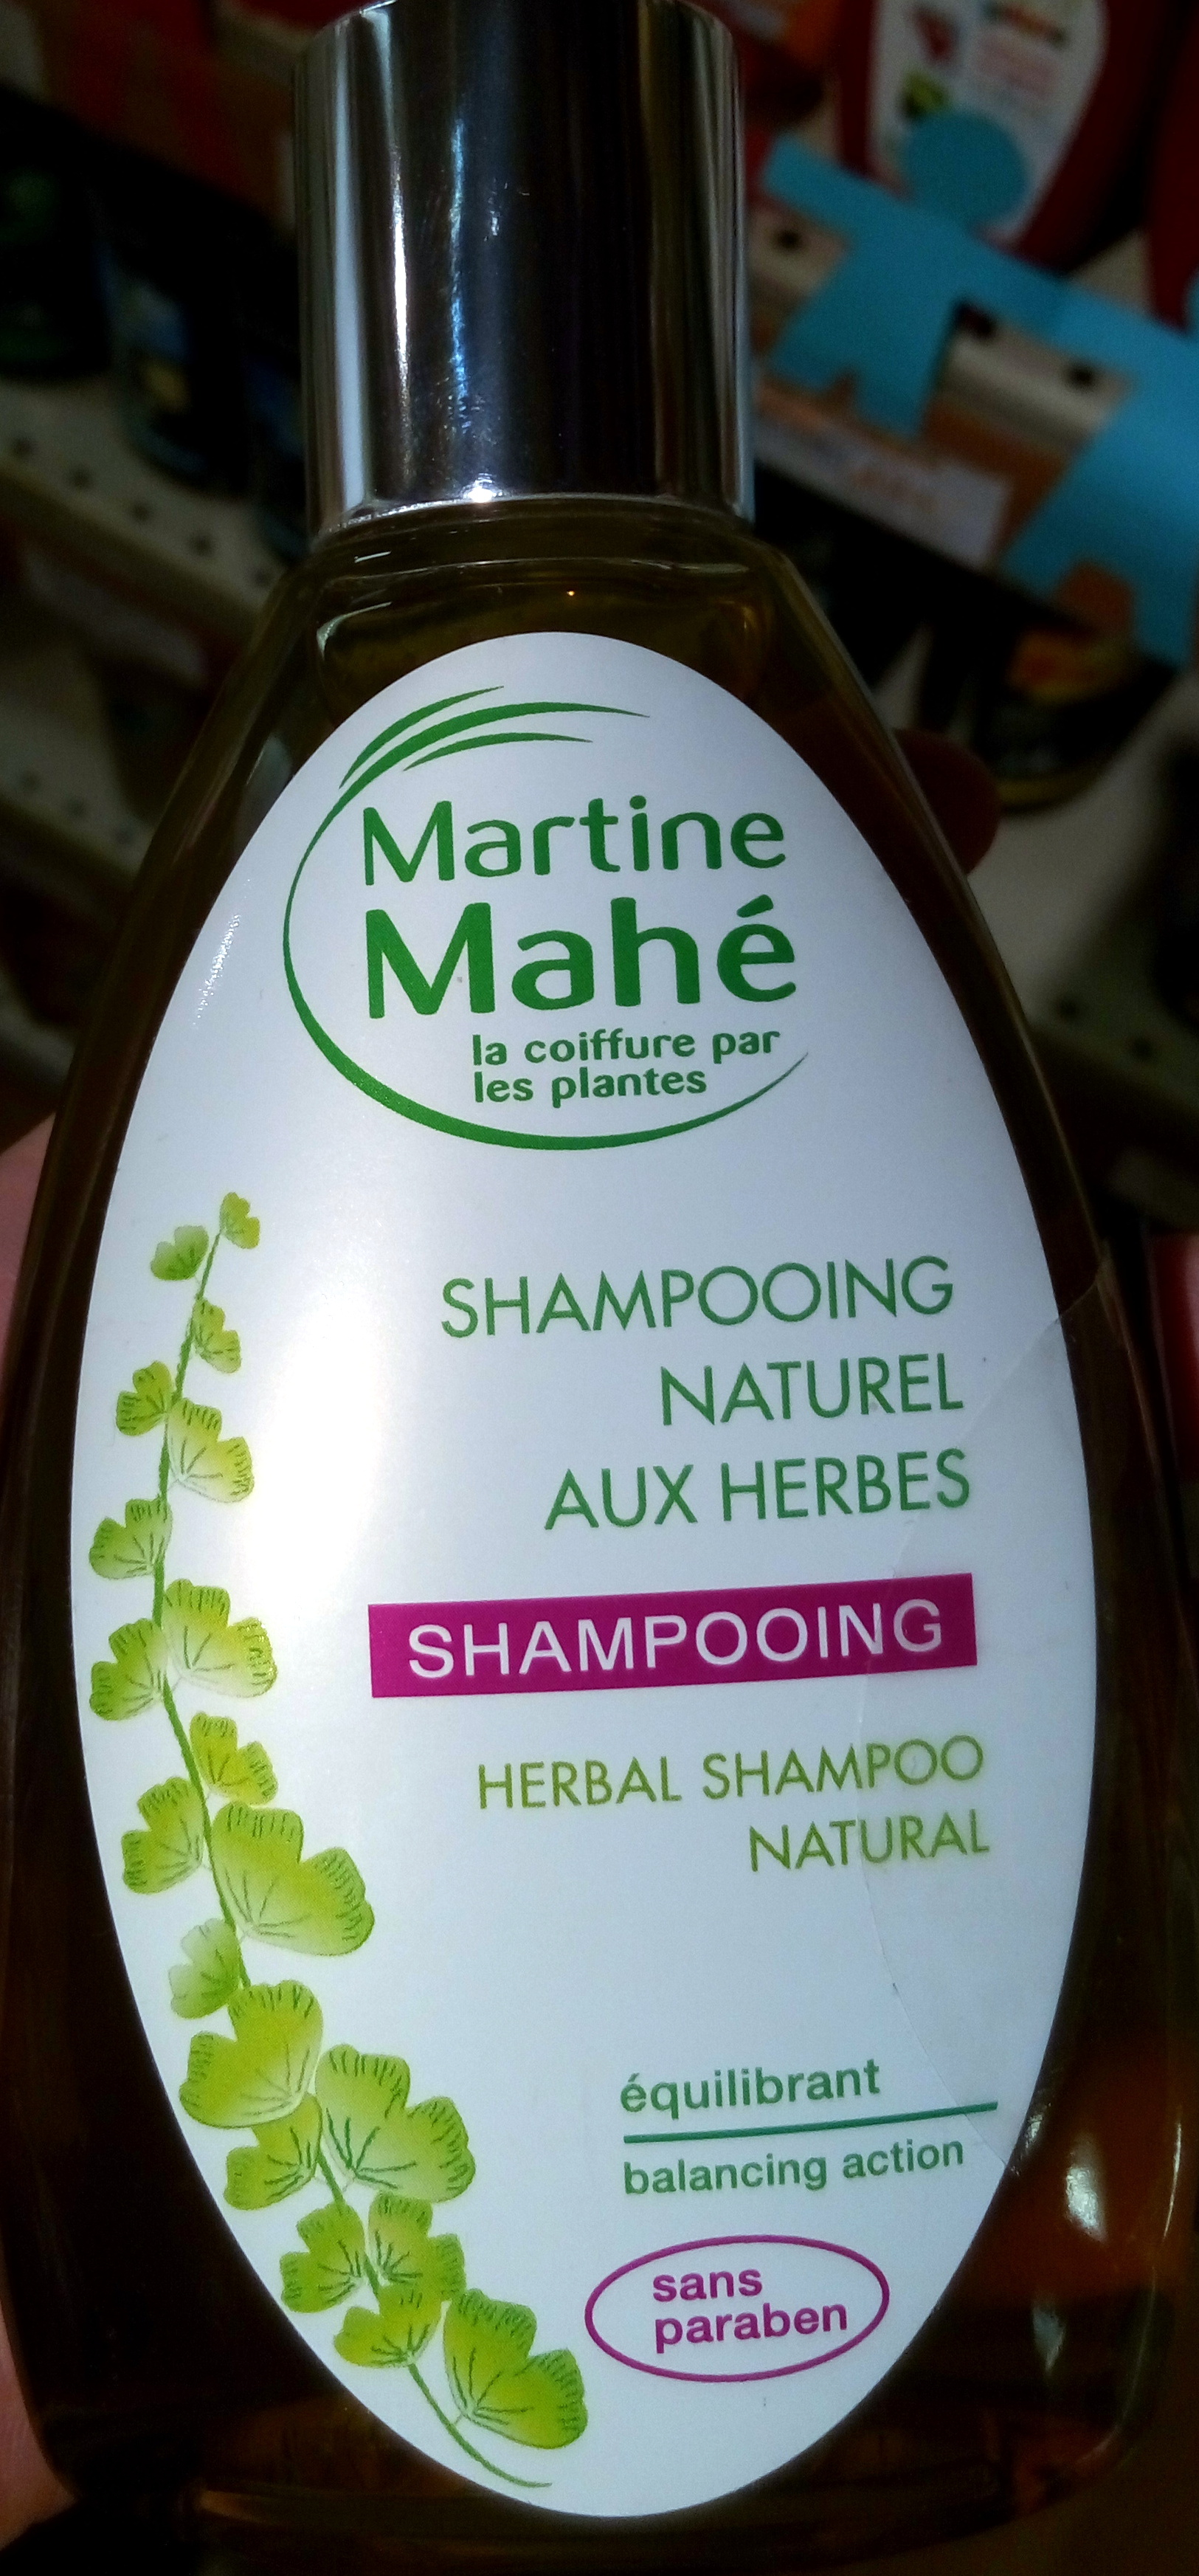 Shampooing naturel aux herbes - Product - fr